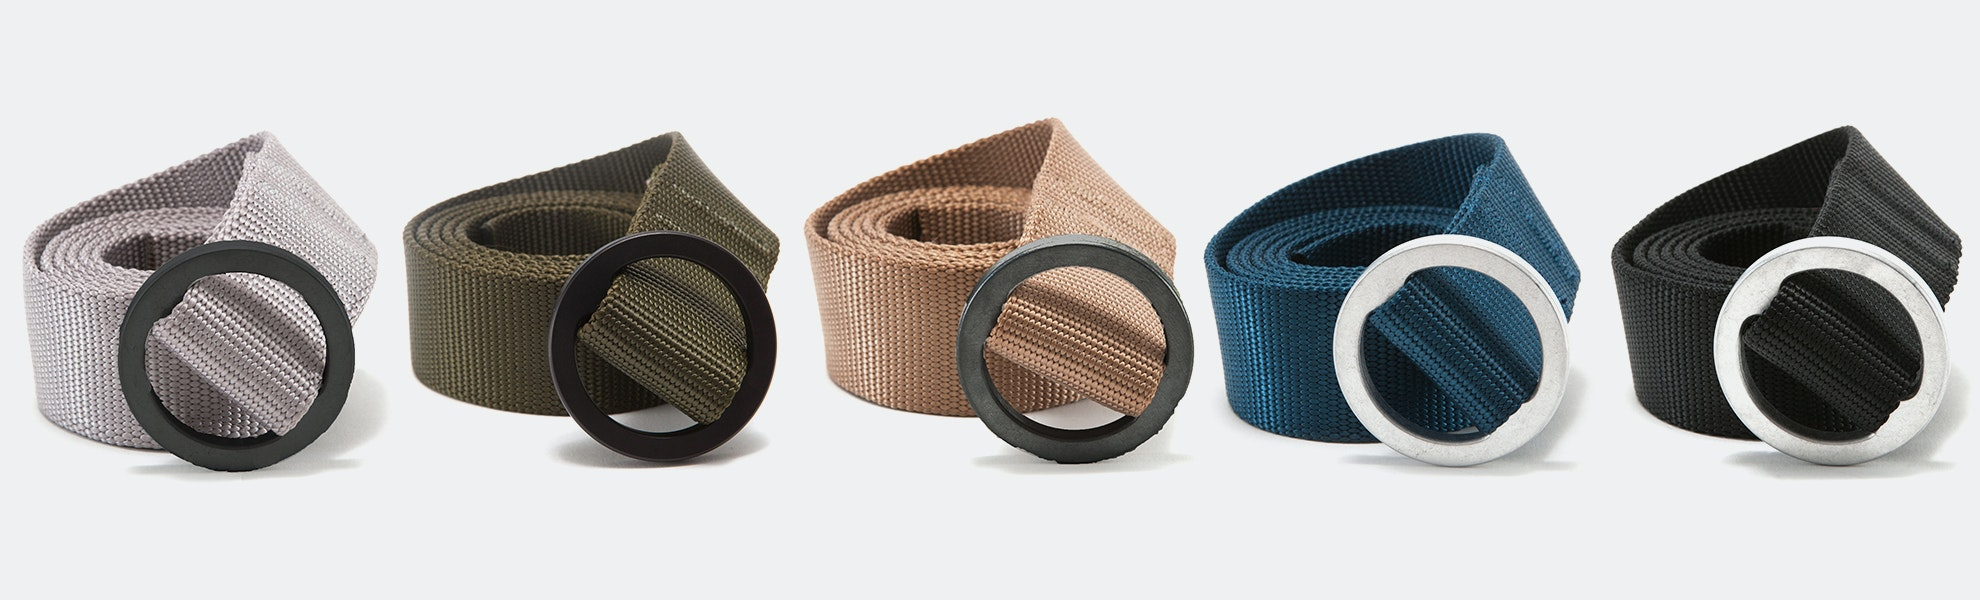 Topo Designs Web Belts